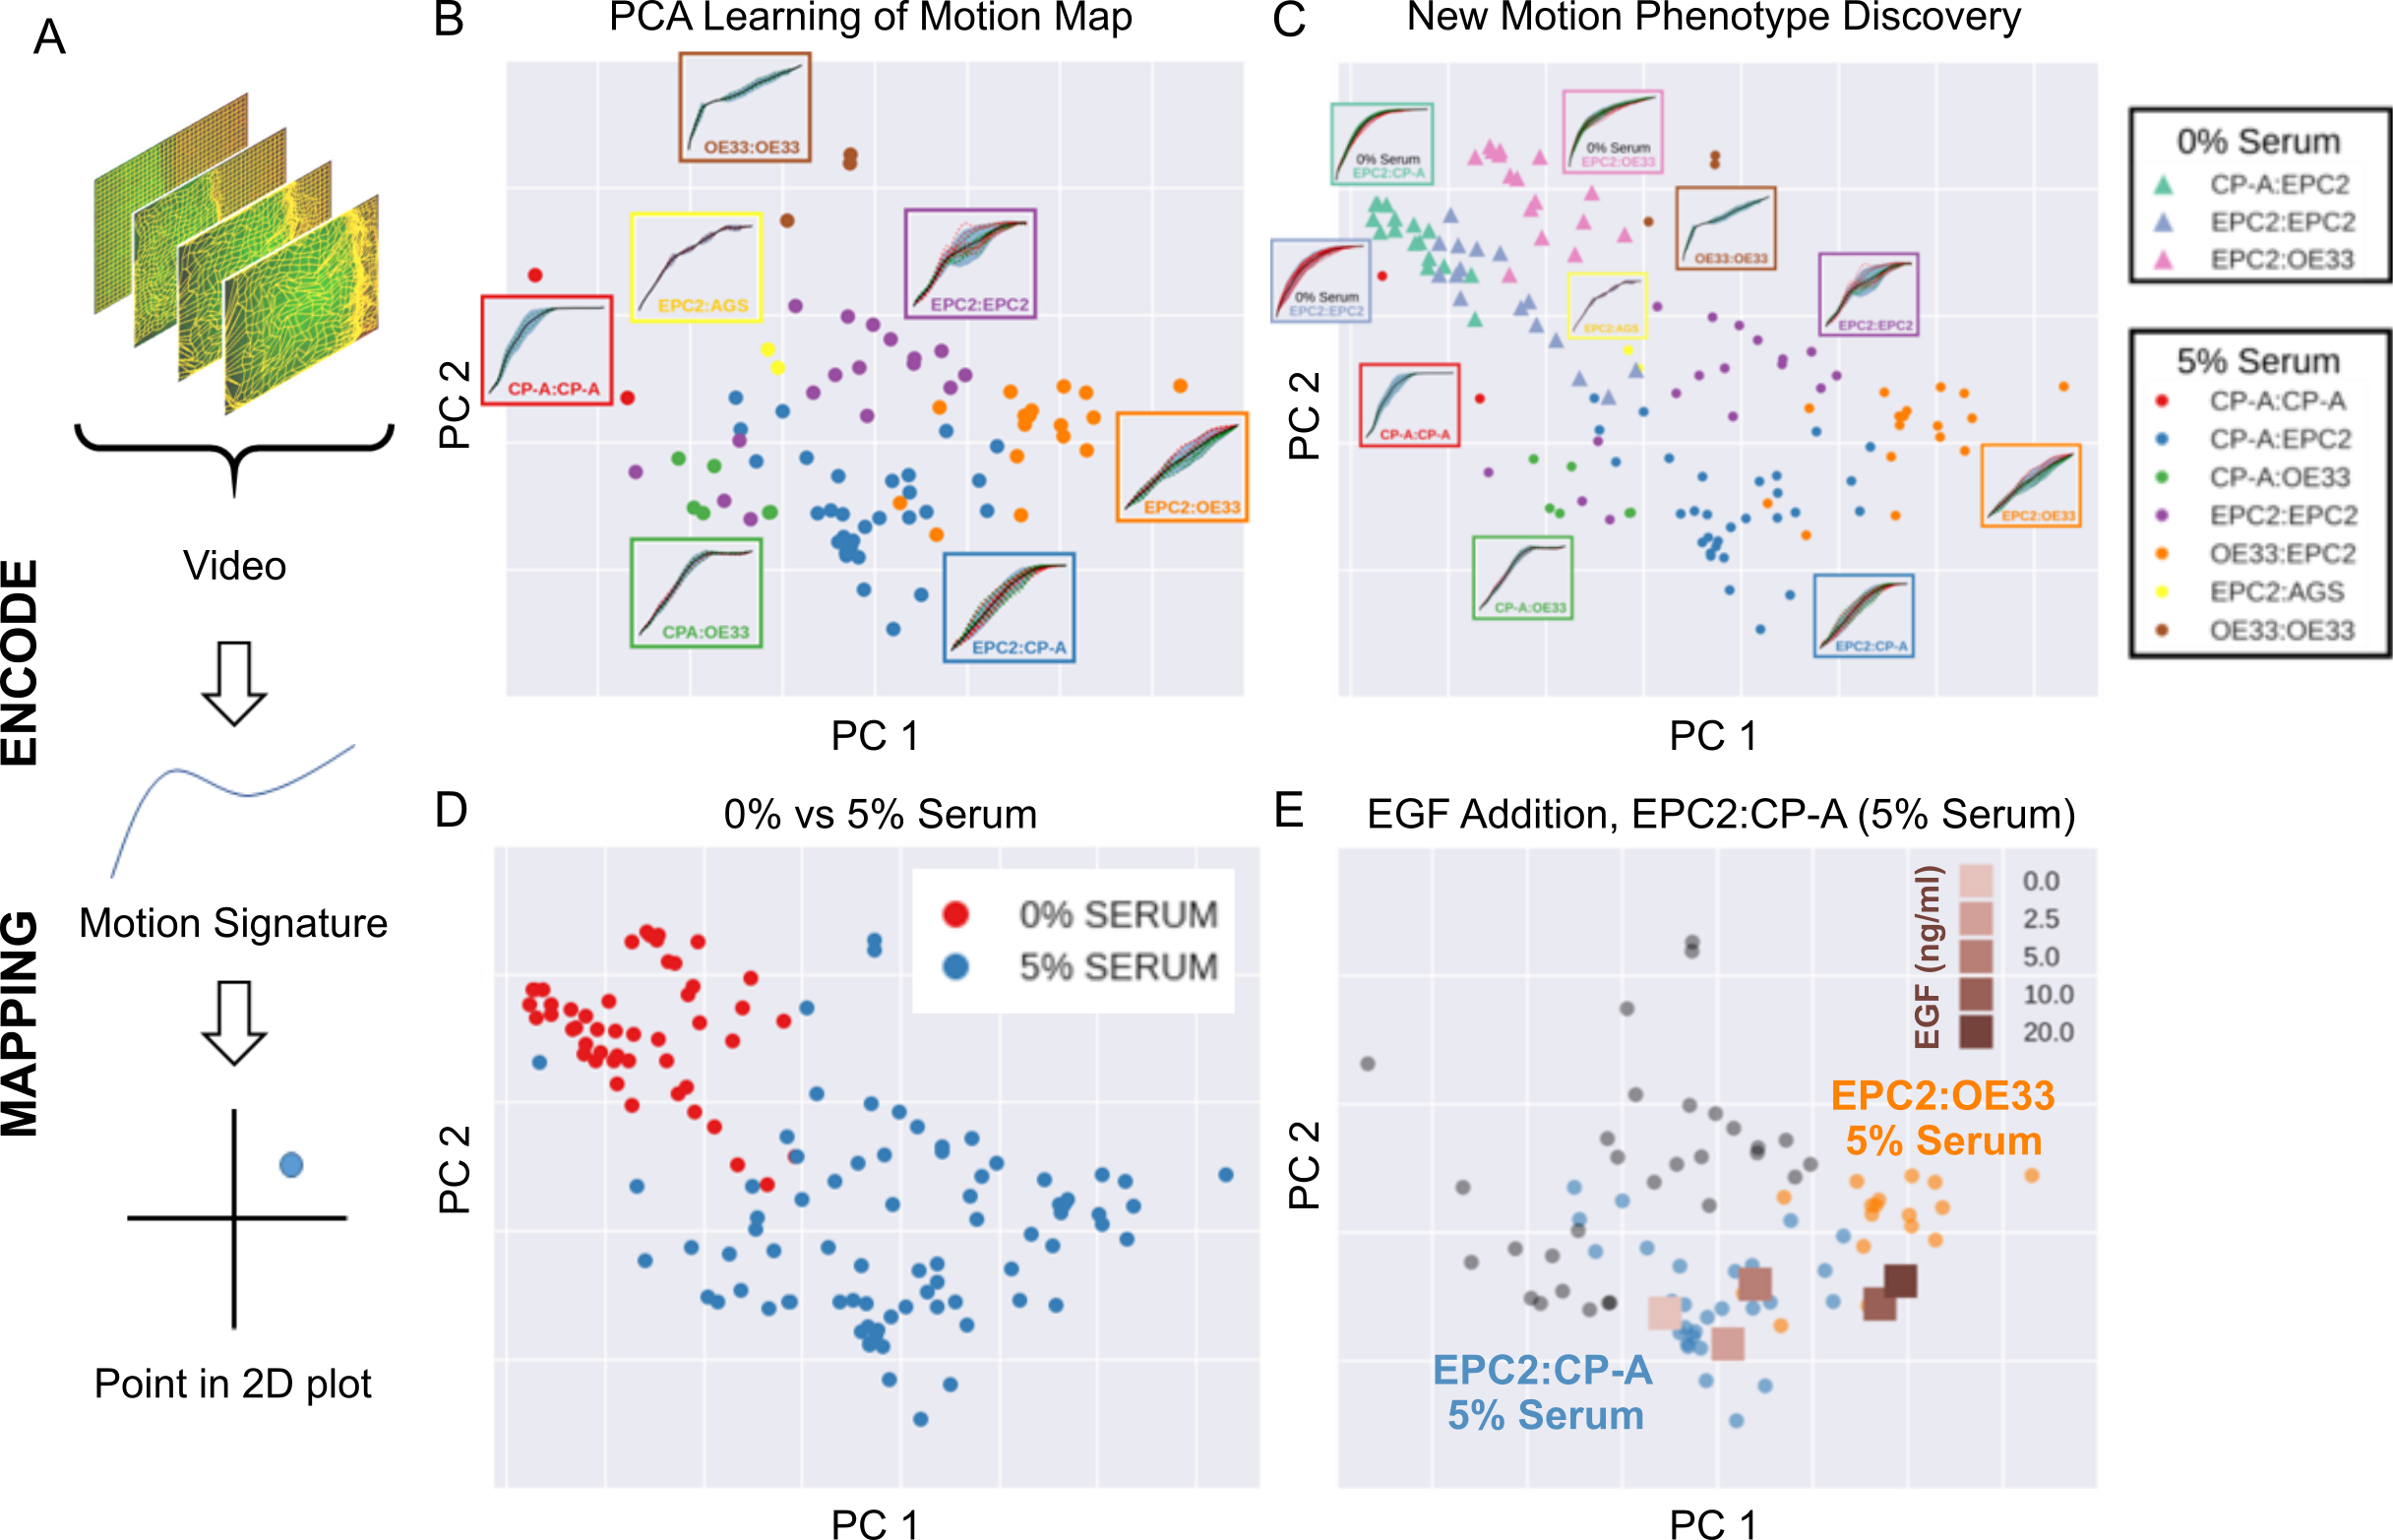 A multi-part figure summarising the MOSES computational framework. (a) Data from a microscopy video is extracted and encoded to generate a motion signature which is then mapped to a point on a 2D plot. (b) Principal component analysis of the motion map shows how motion signatures from videos taken with different oesophageal cell lines cluster separately. (c) These cell lines grown under different conditions (0 v 5 % serum) have different motion signatures that cluster differently on a PCA plot, indicating the potential for new motion phenotype discovery. (d) A PCA plot of the motion signatures from 0% v 5% serum growth conditions show that they cluster almost completely separately. (e) When increasing amounts of EGF is added to the growth medium of the squamous-columnar EPC2:CP-A cell line, the EPC2:CP-A motion dynamics become increasingly similar to squamous-cancer EPC2:OE33 above 5 ng/ml, as evidenced by the square points moving from the area of blue circular EPC2:CP-A points on the PCA plot into the area of orange circular EPC2:OE33 points.